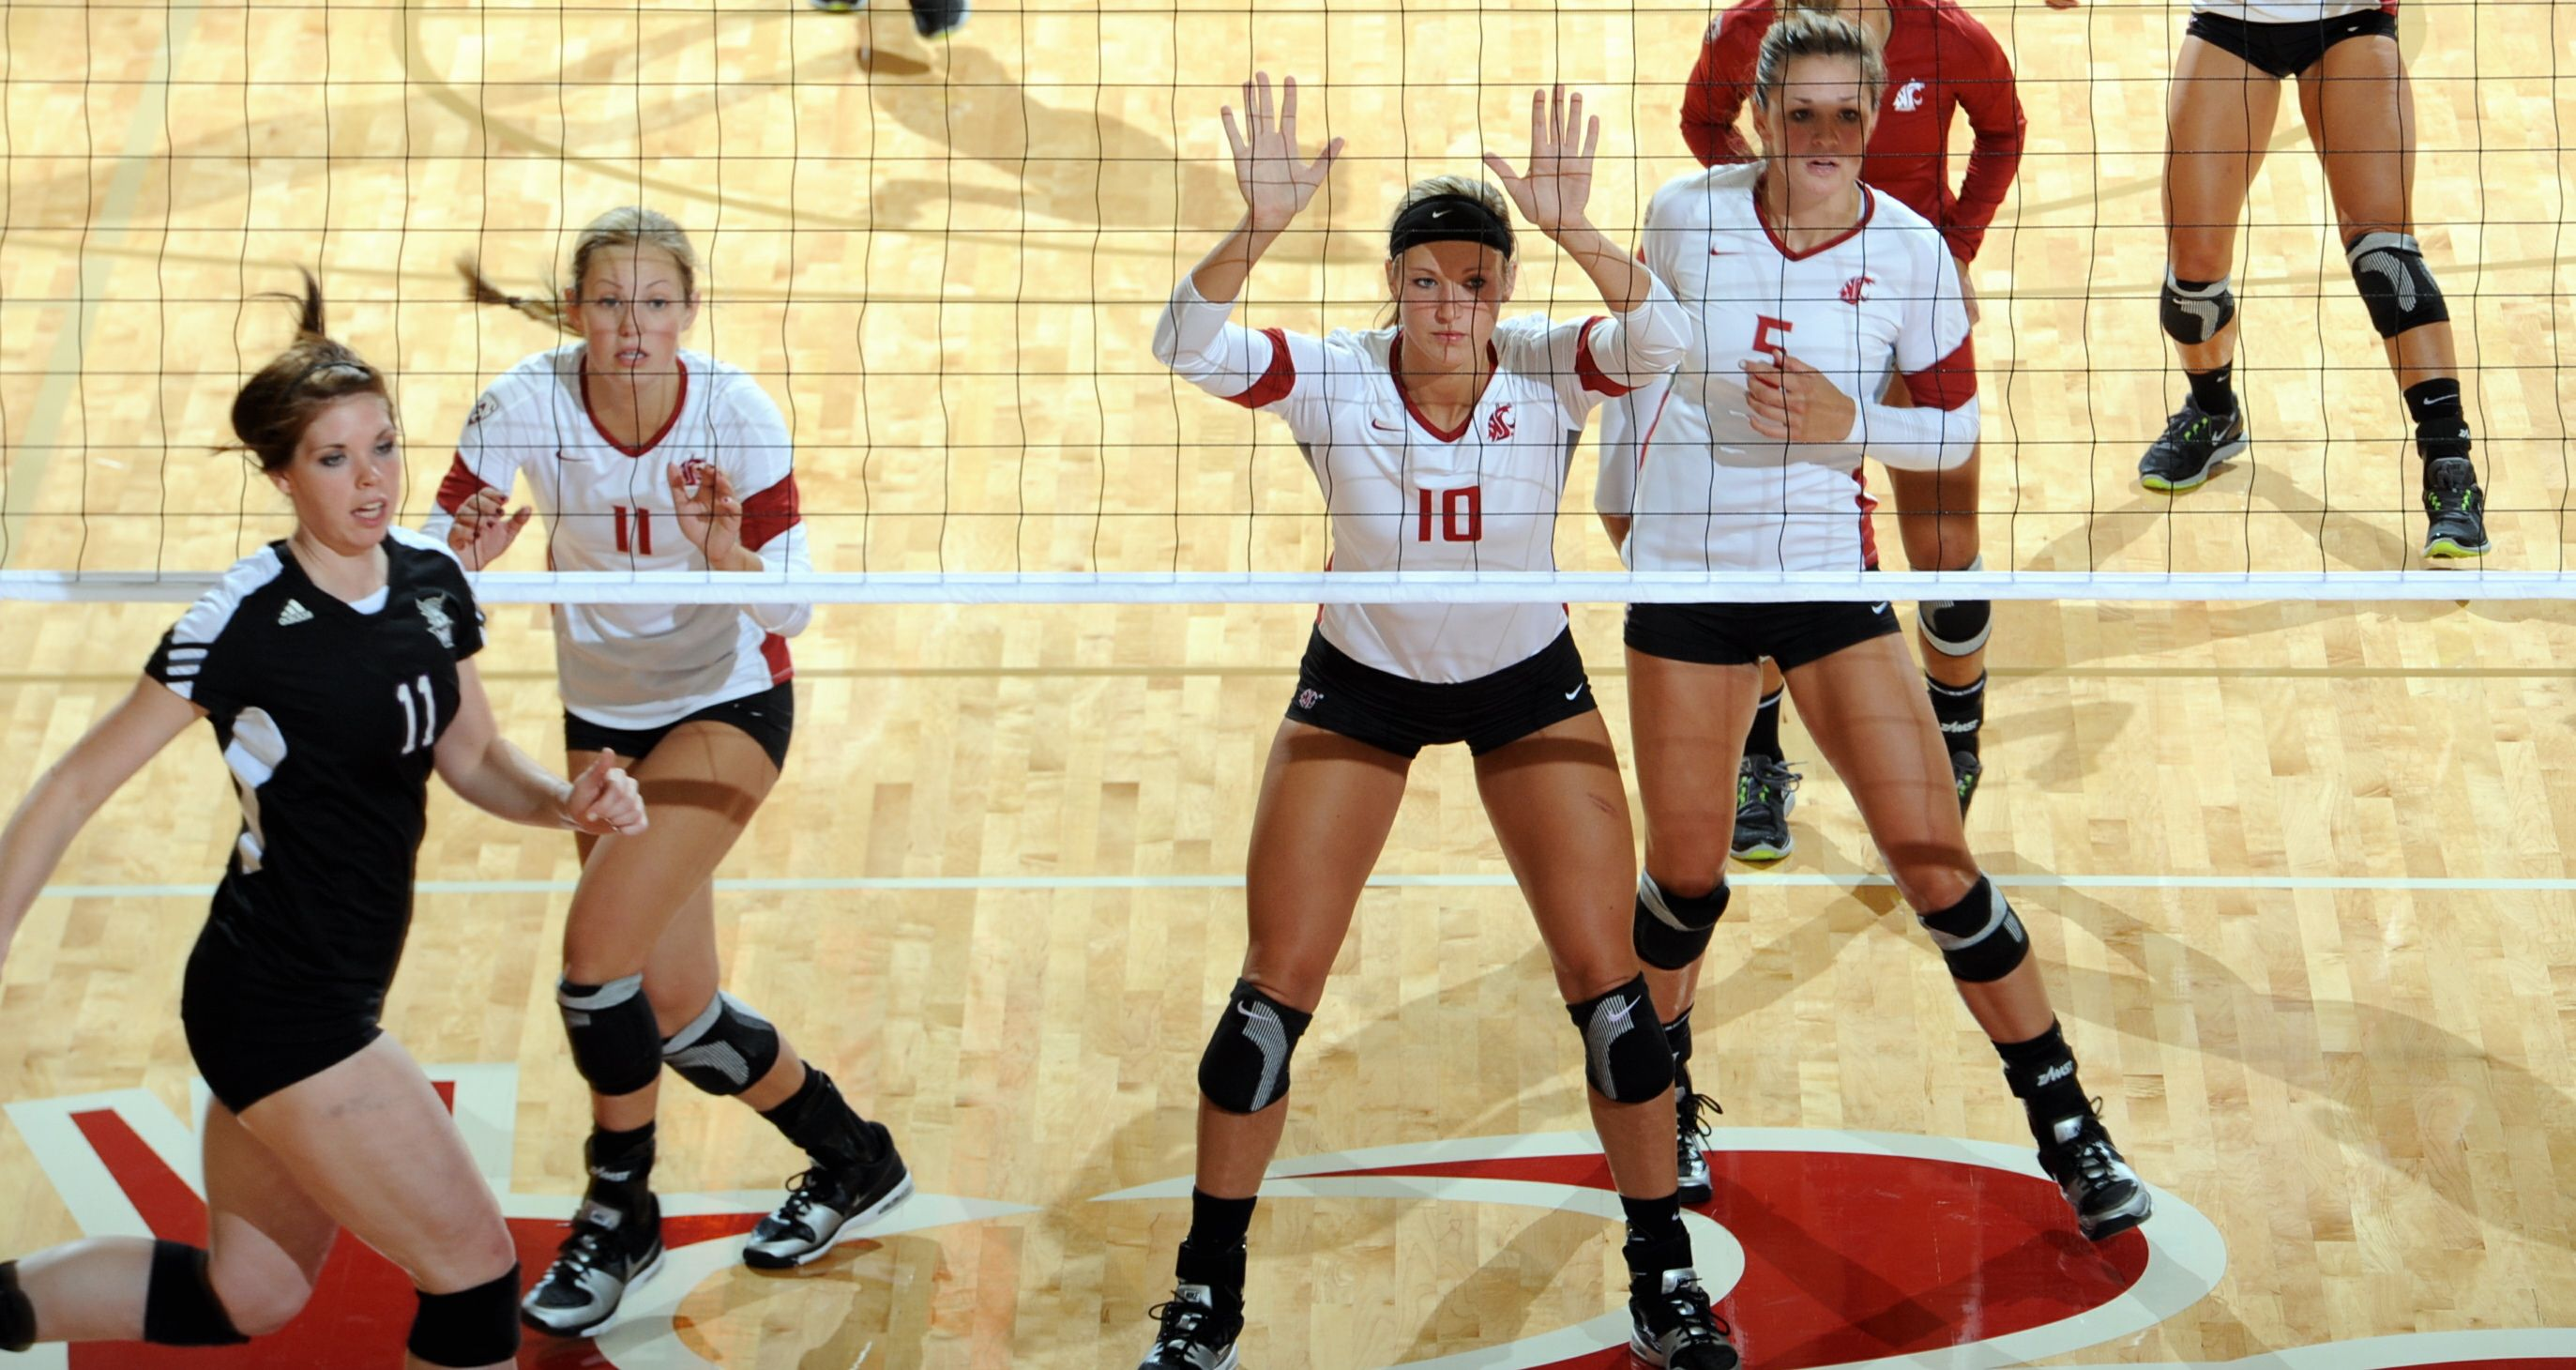 Wsu Volleyball Takes 10 2 Record To No 5 Uw For Tuesday Tv Match Gocougs Washington State Cougars Sports Volleyball